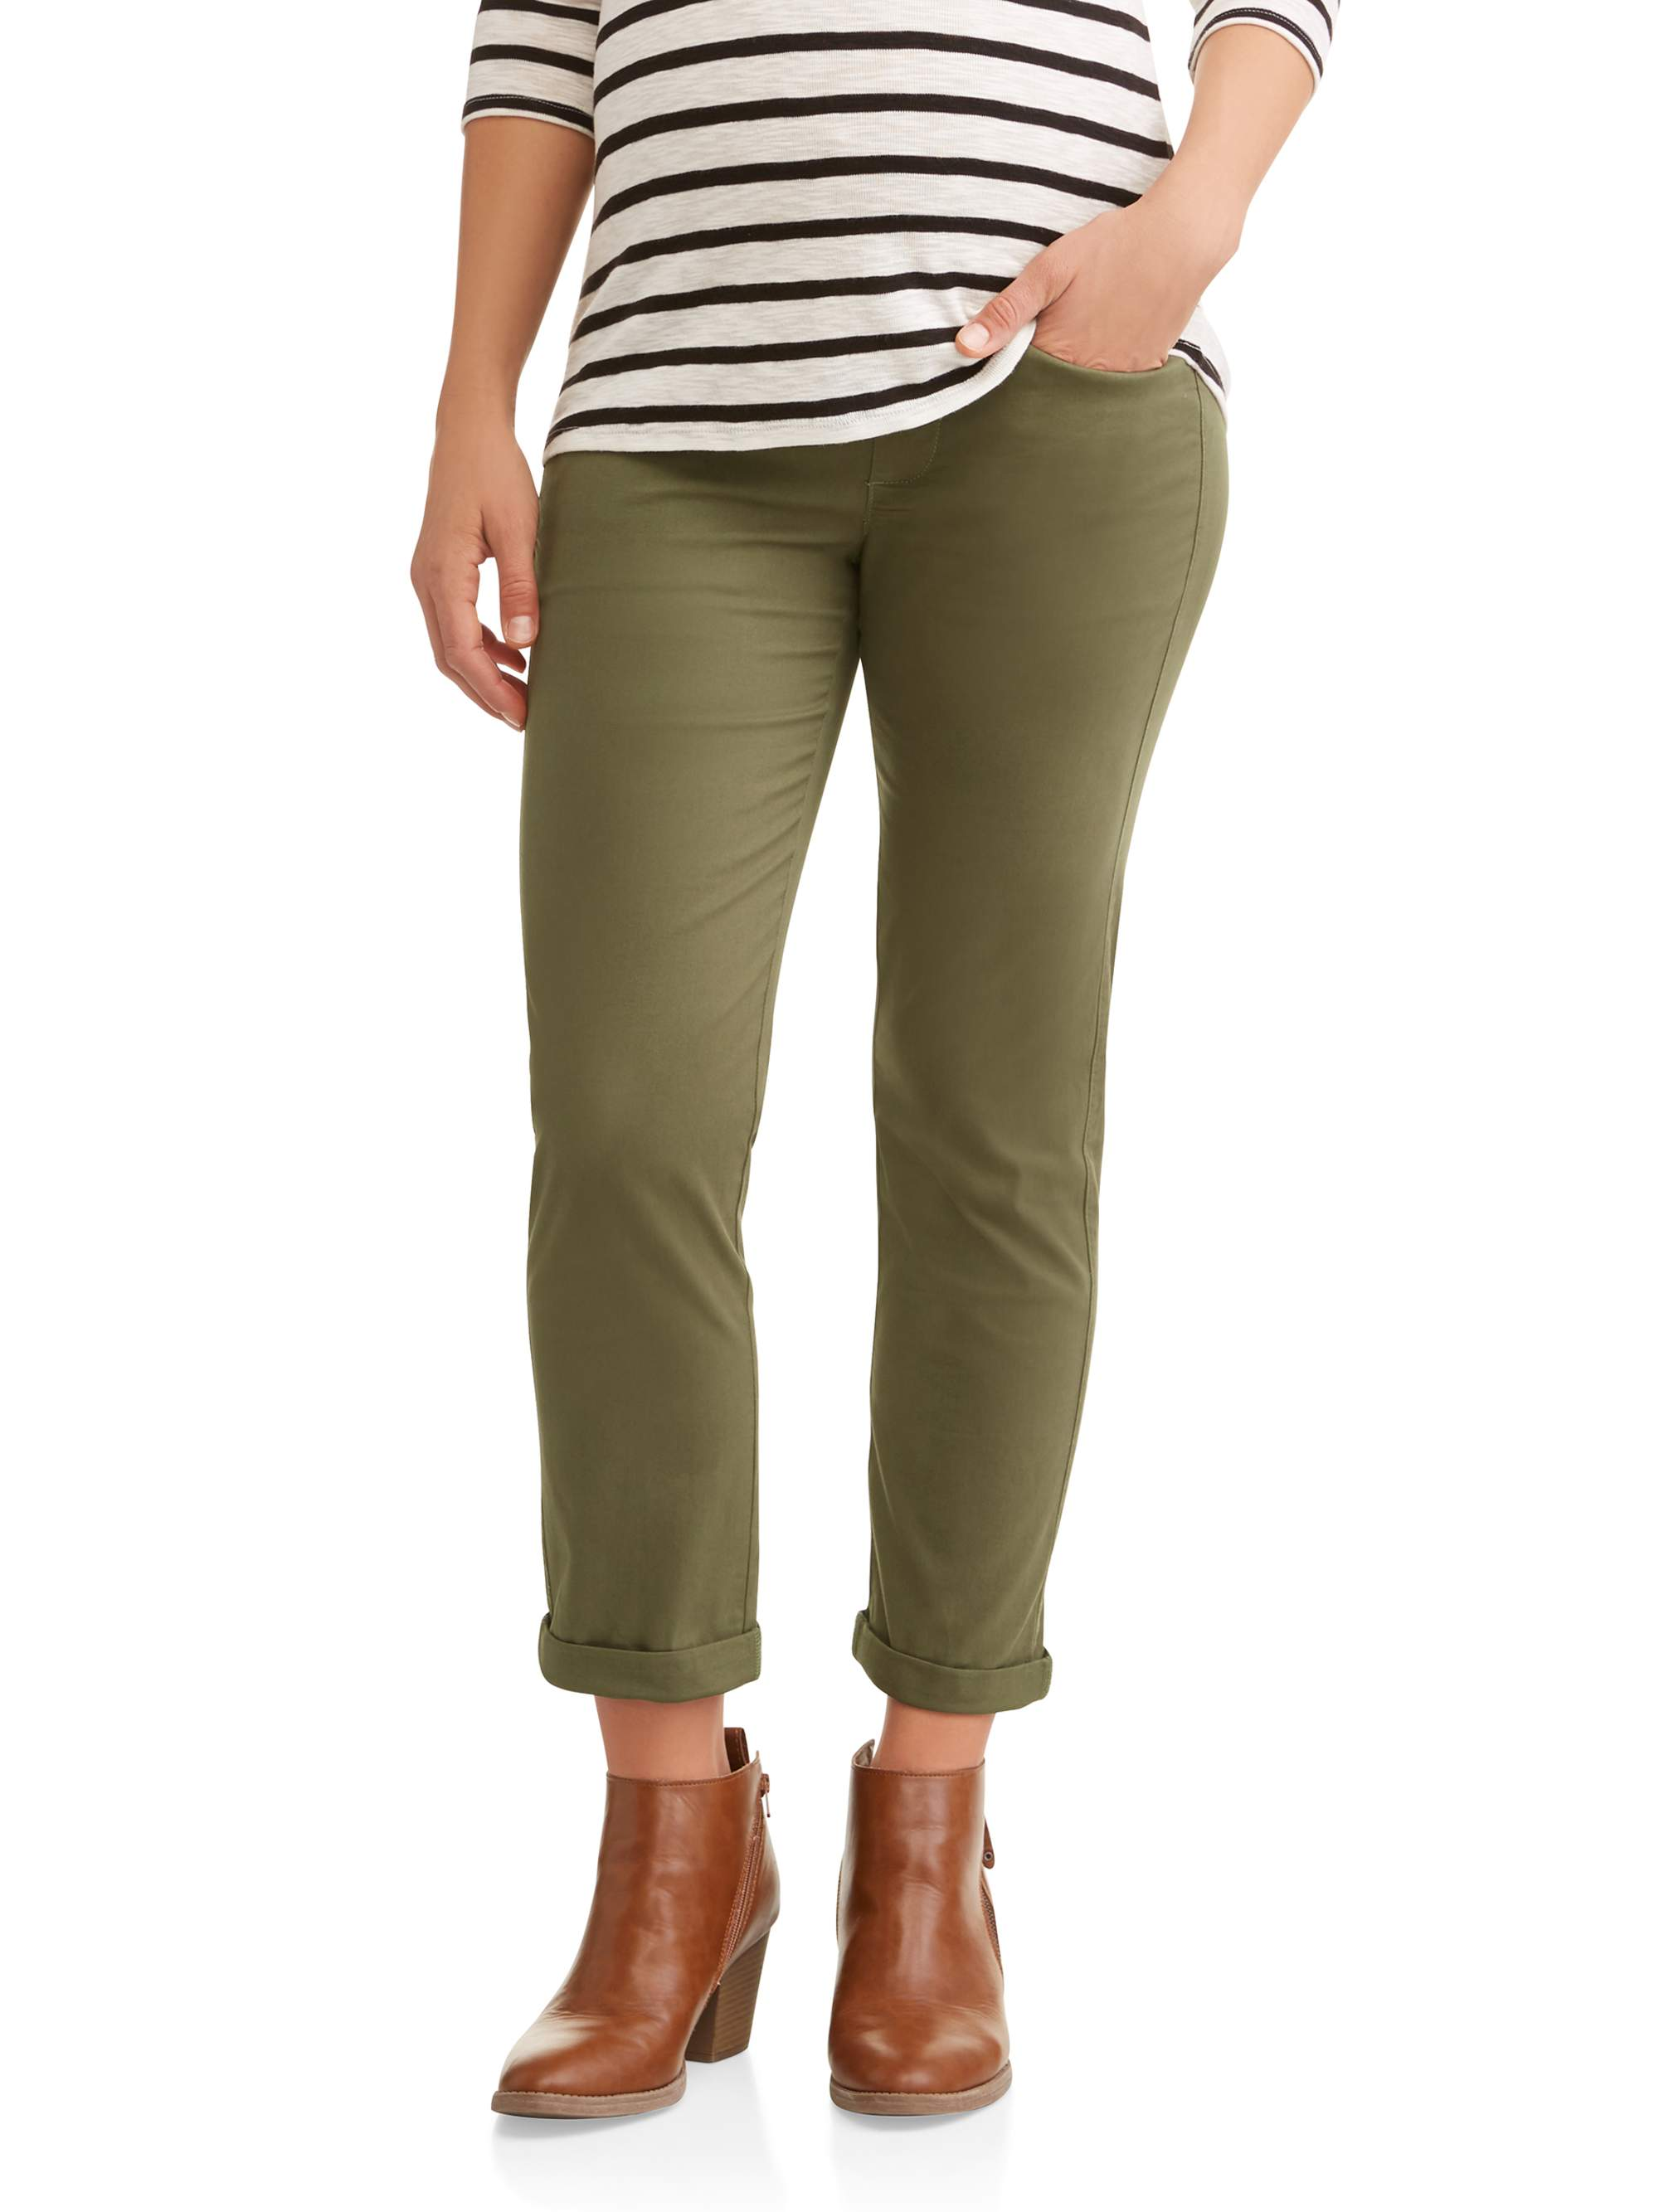 Maternity Over the Belly Stretch Twill Cuffed Chino Pant